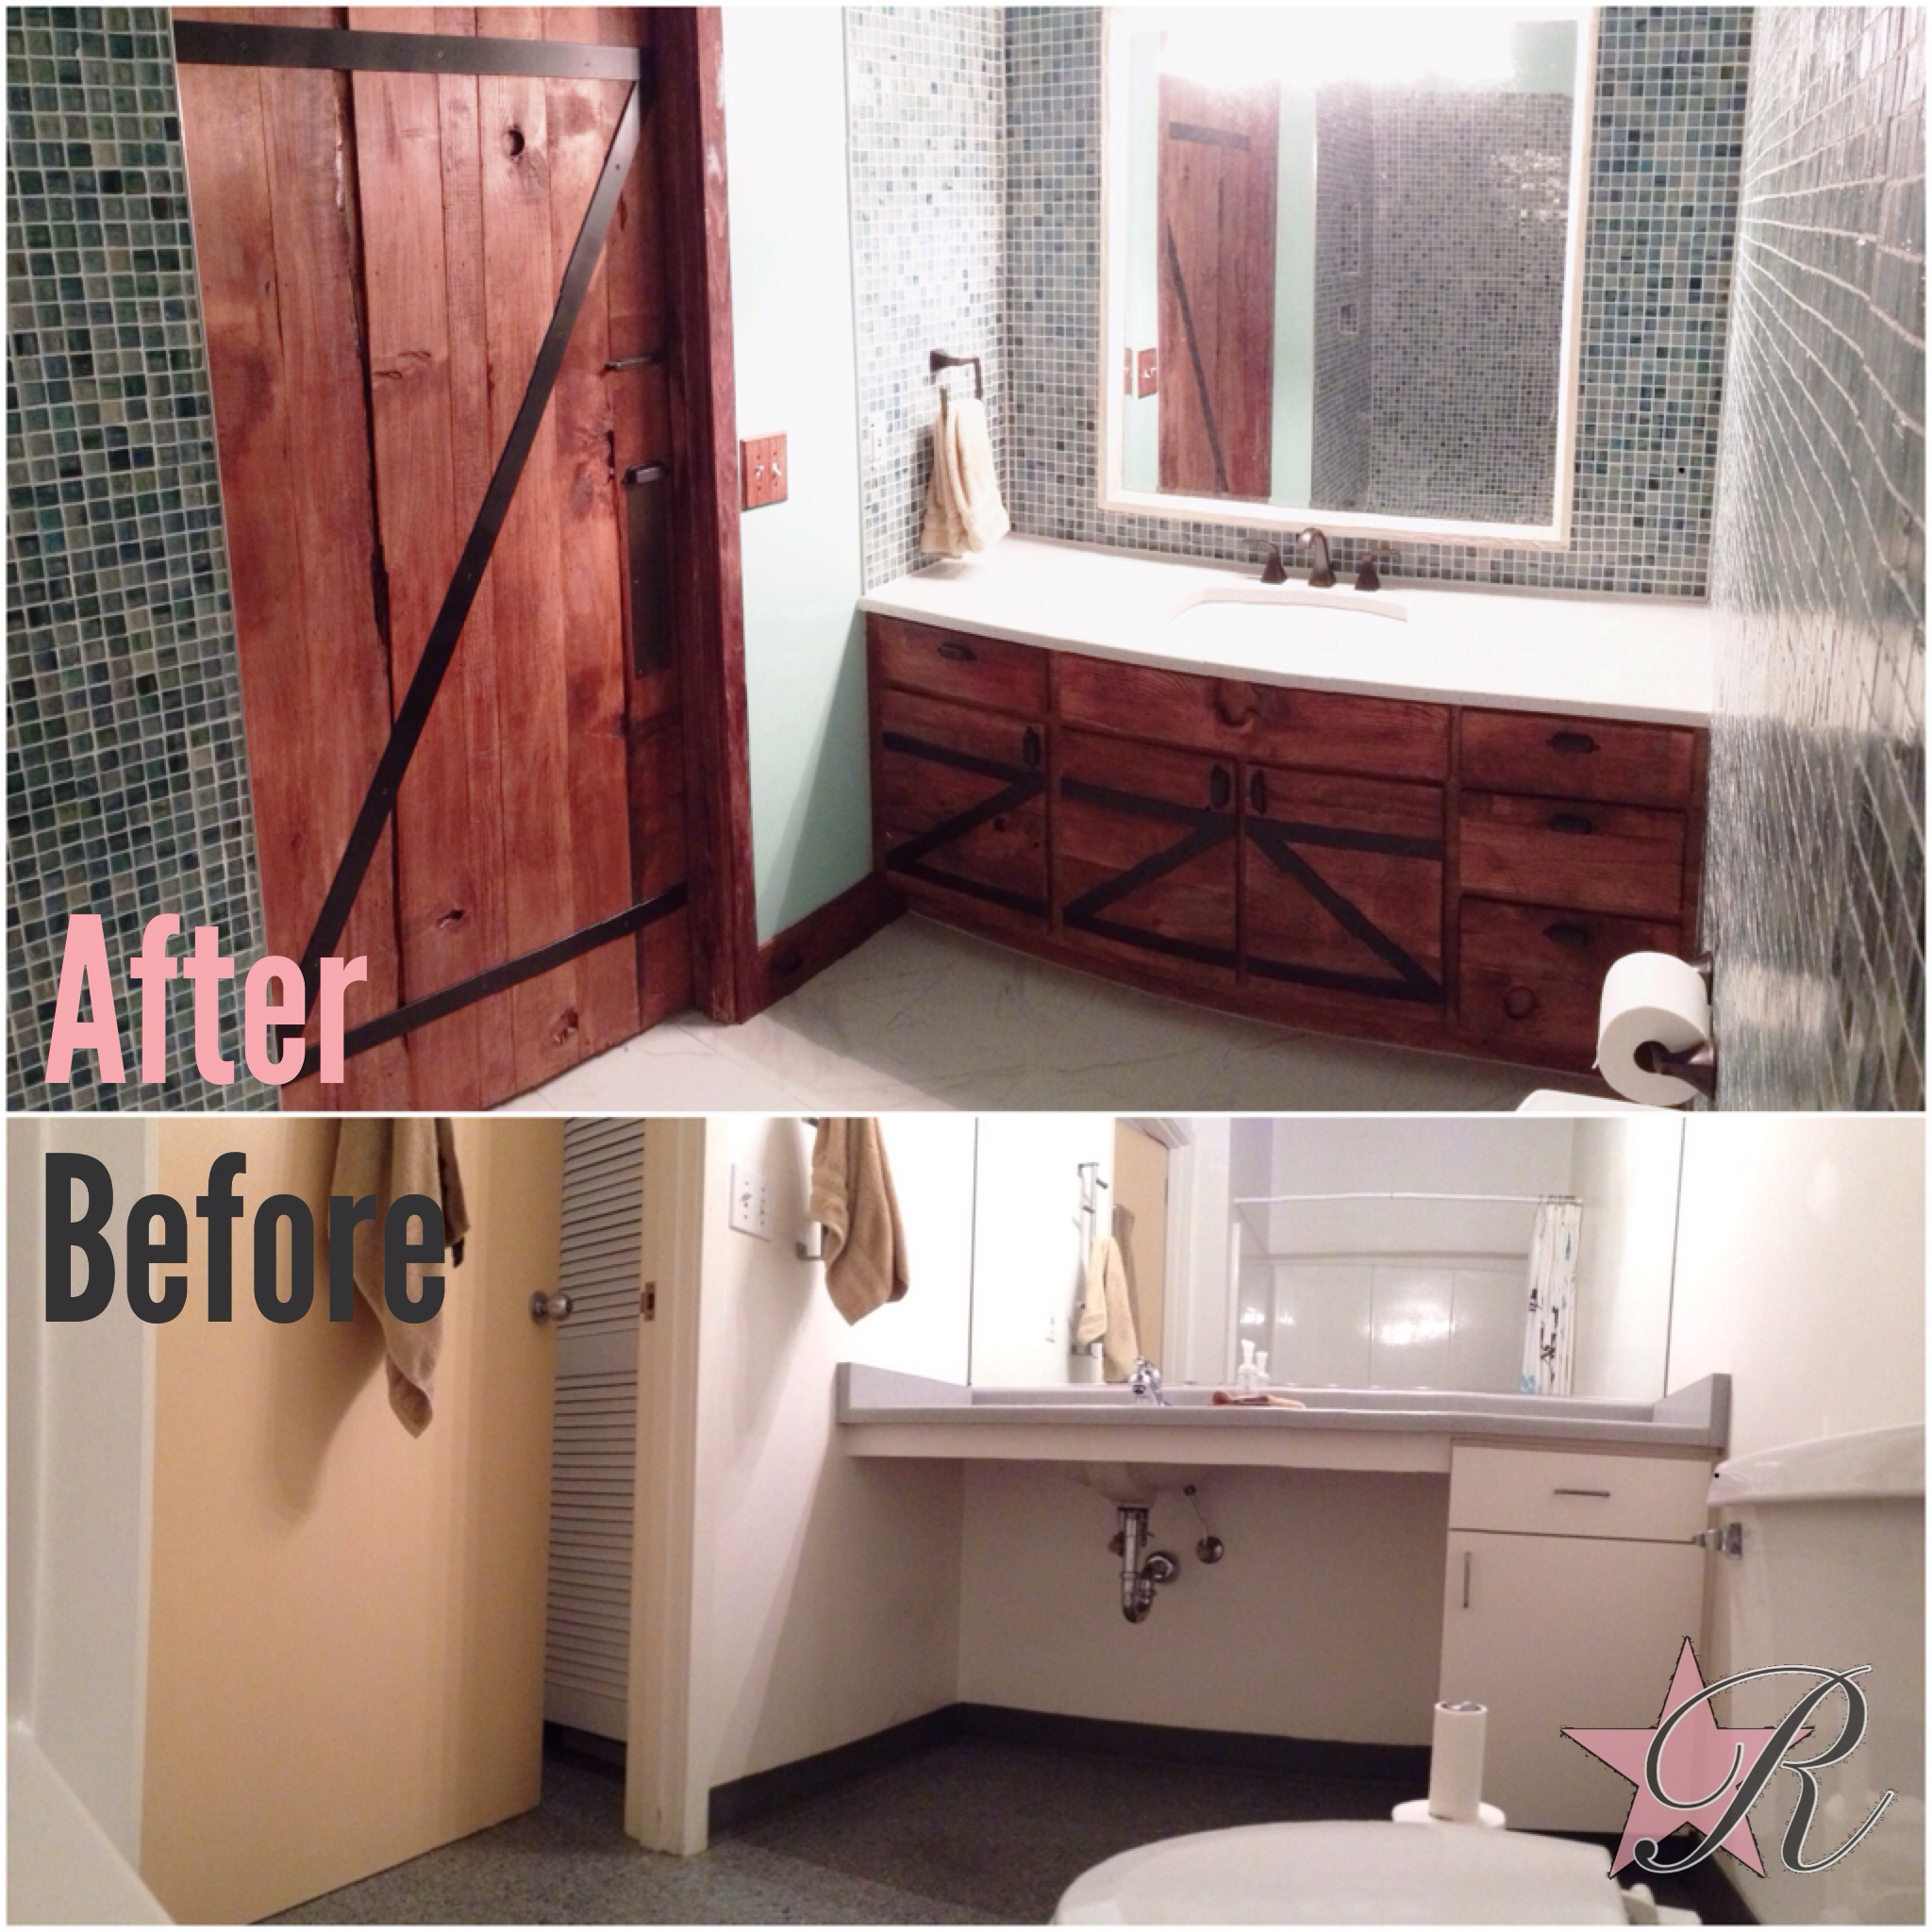 Rockstar Remodel demo'd the old bathroom and installed a glass mosaic shower that wrapped around the bathroom. The door and vanity were custom-made per client's inspirations.